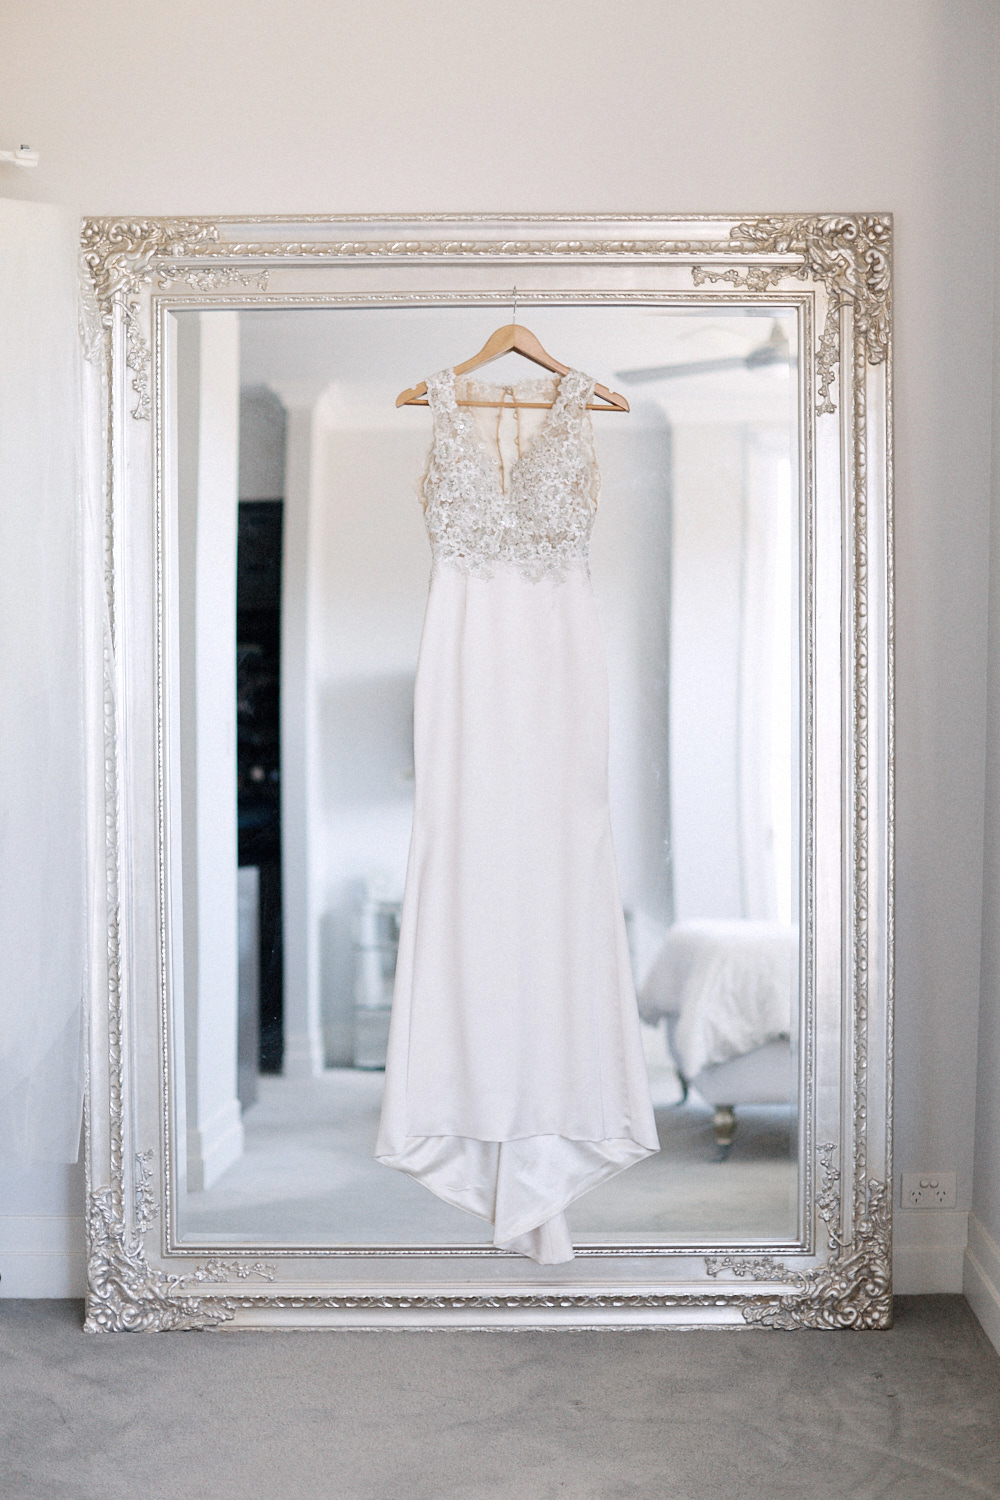 Wedding dress hung on mirror by Blue Mountains wedding photographer Joshua Witheford